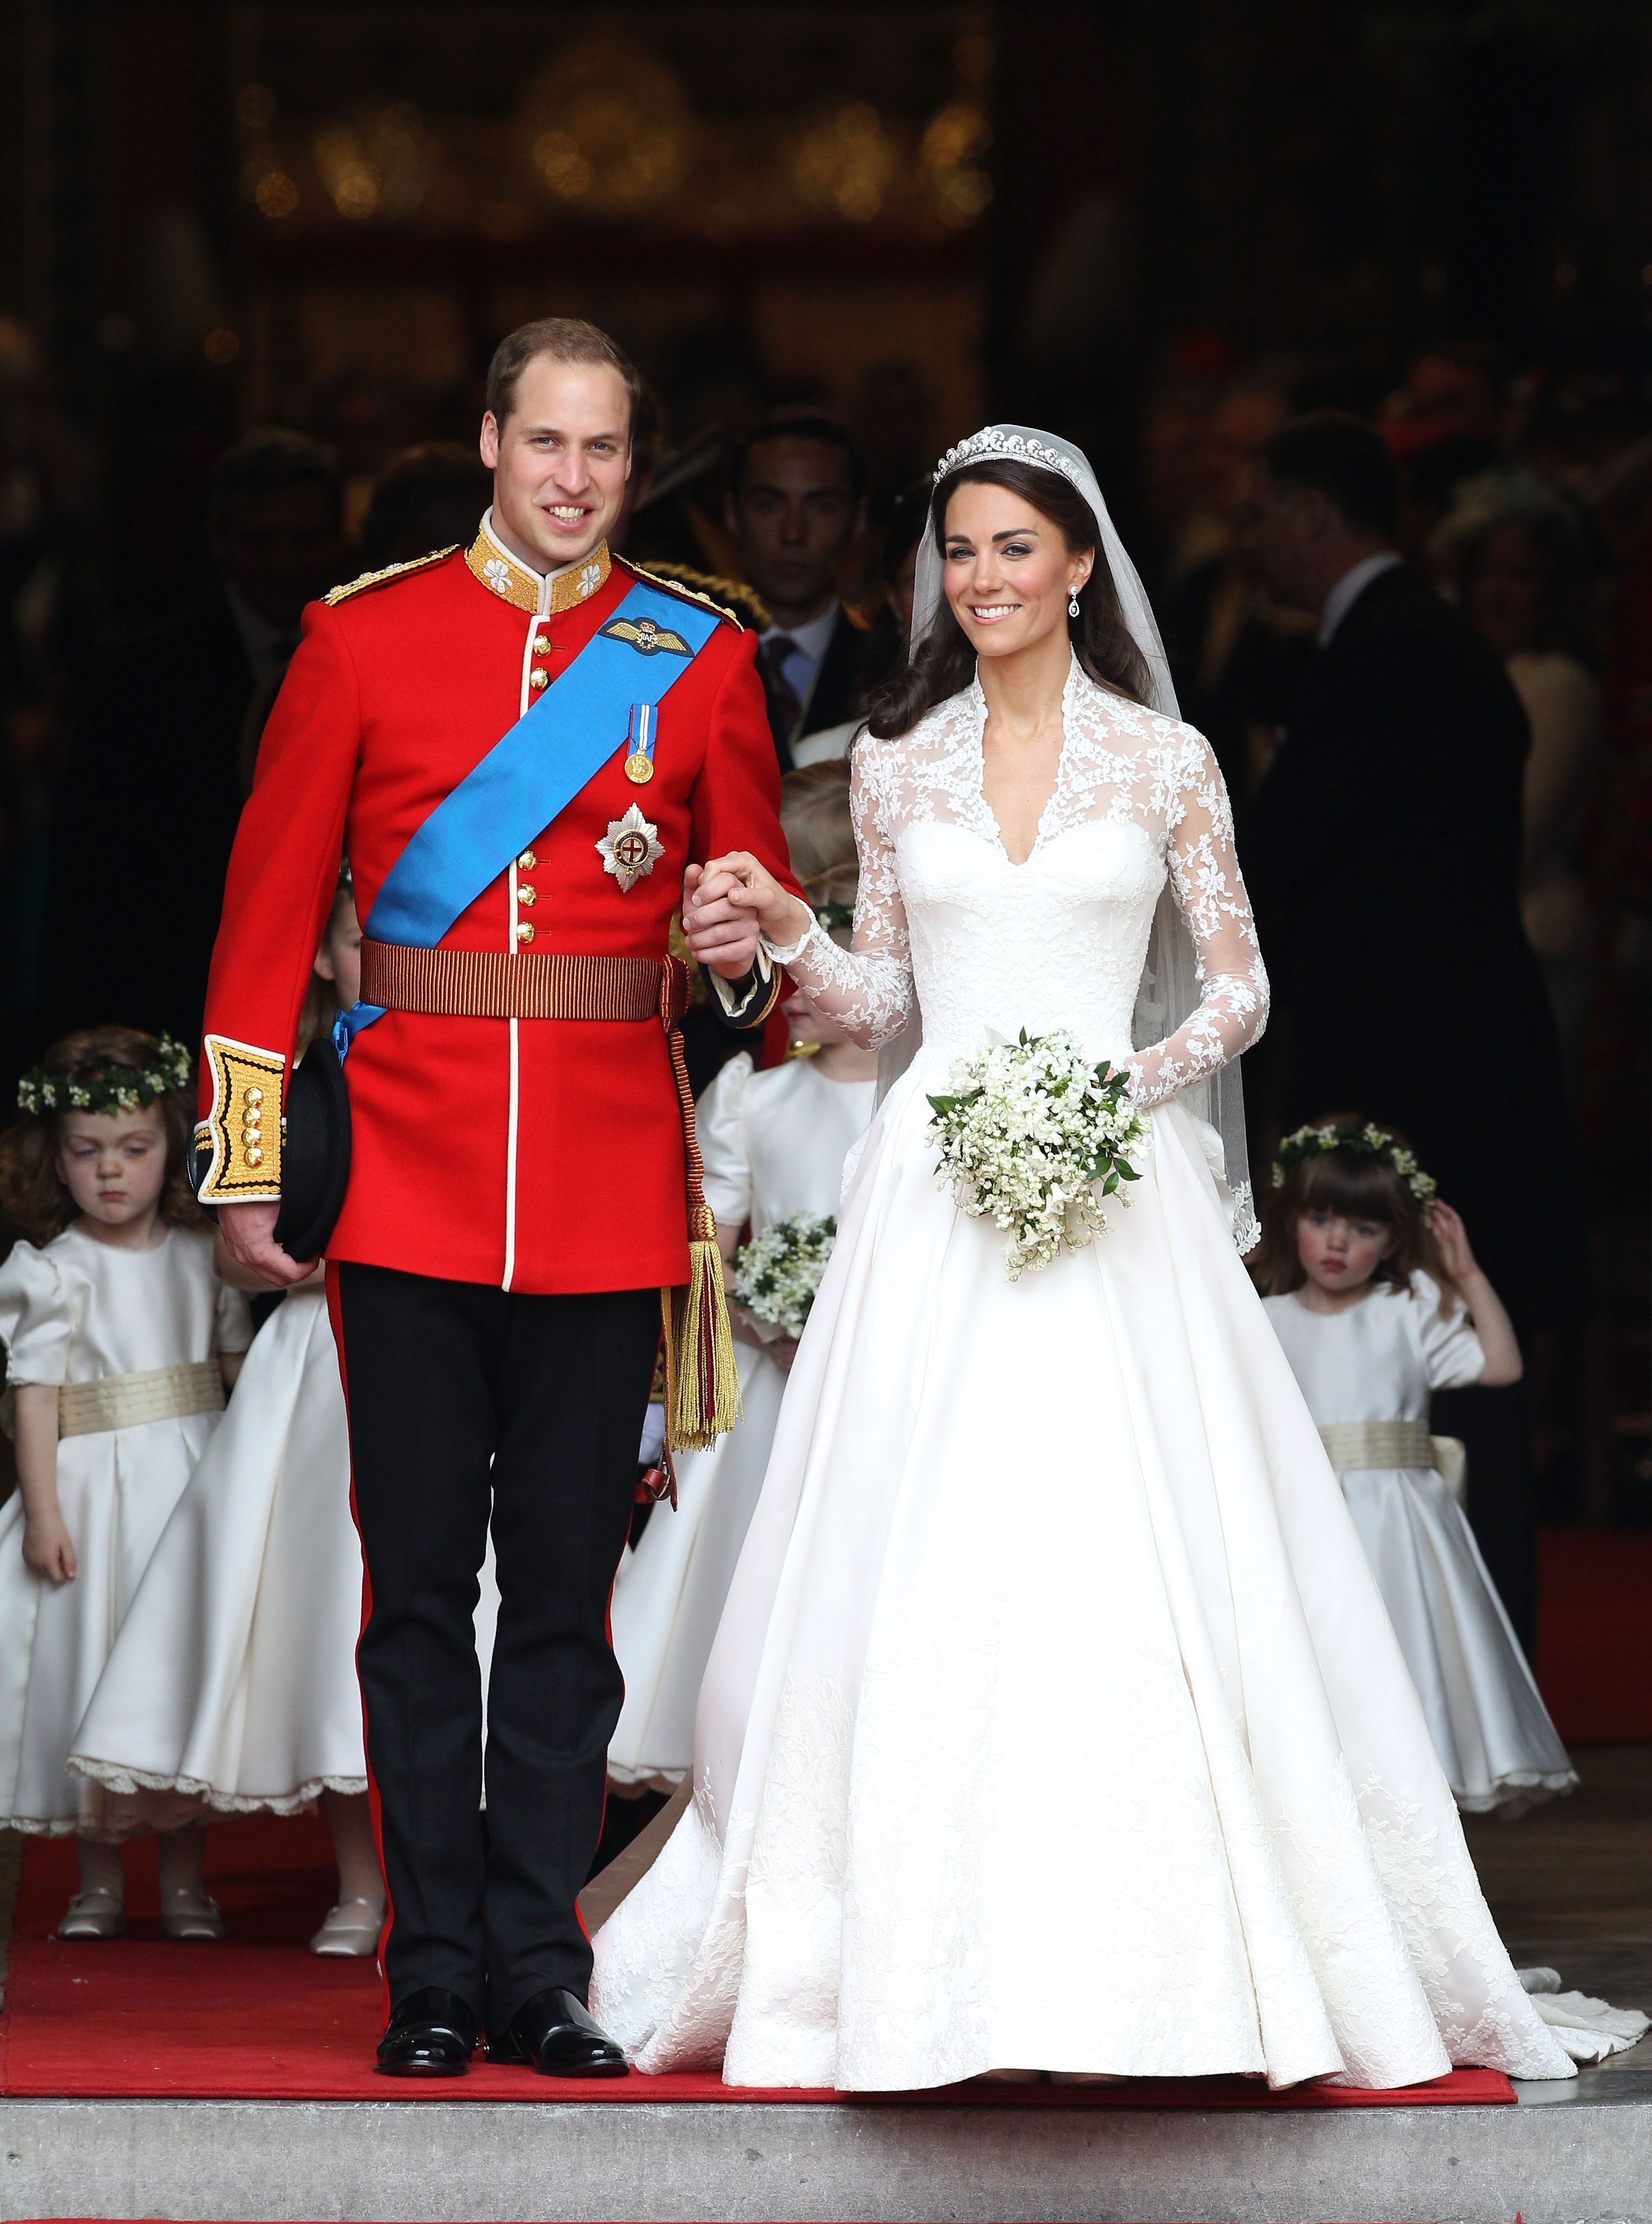 Prince William, Duke of Cambridge and Catherine, Duchess of Cambridge smile following their marriage at Westminster Abbey on April 29, 2011 in London | Photo: Getty Images